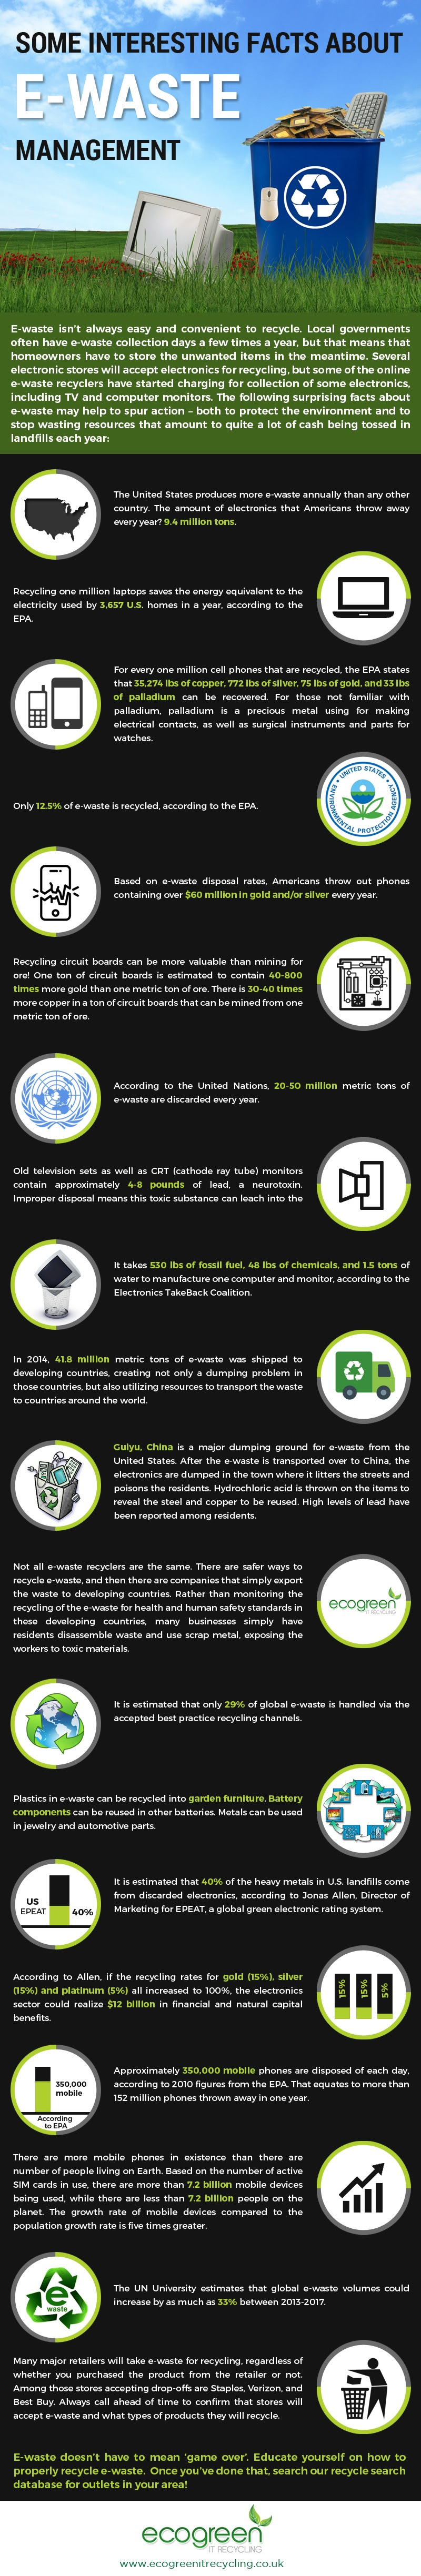 Some Interesting Facts About E-Waste Management